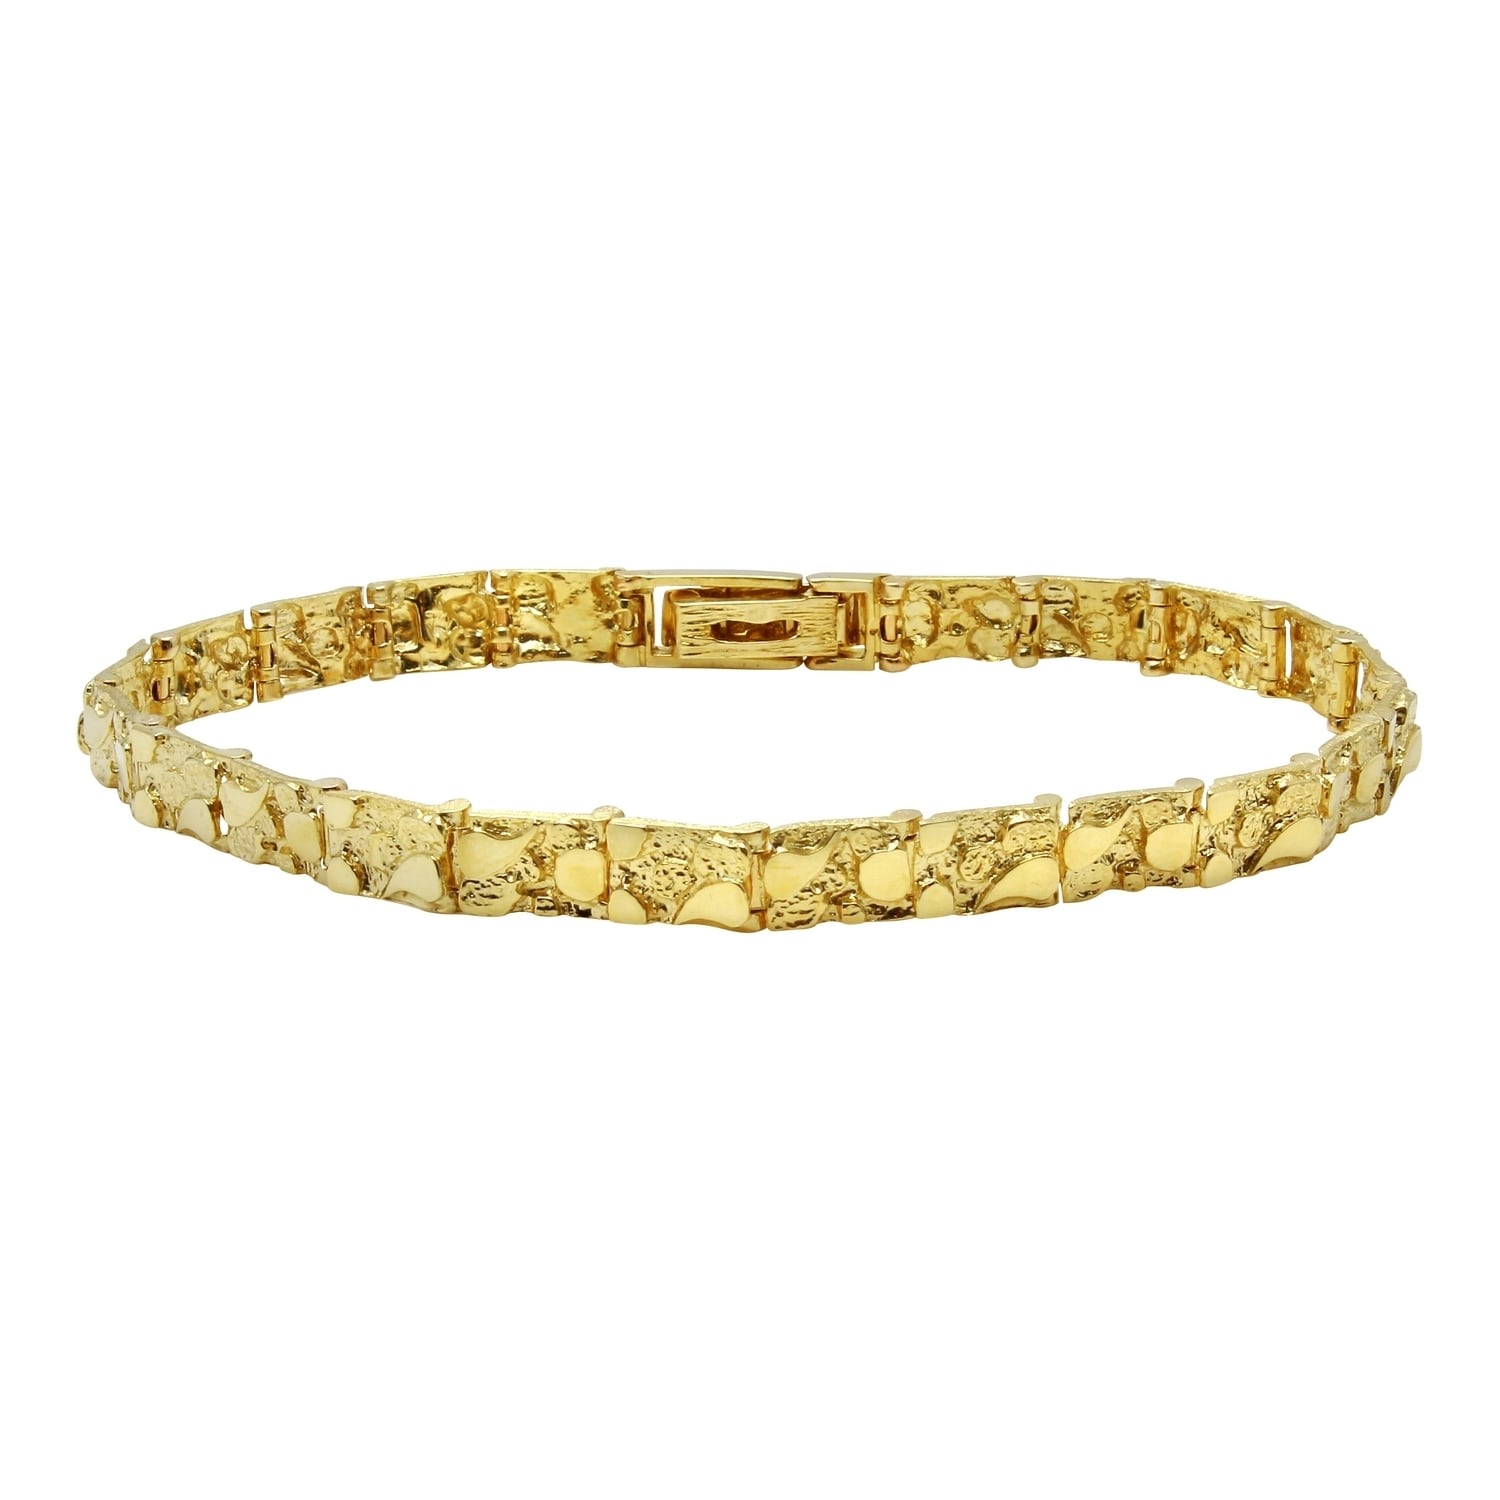 nugget bangle bangles mens products karat or gold bracelets collections en bracelet